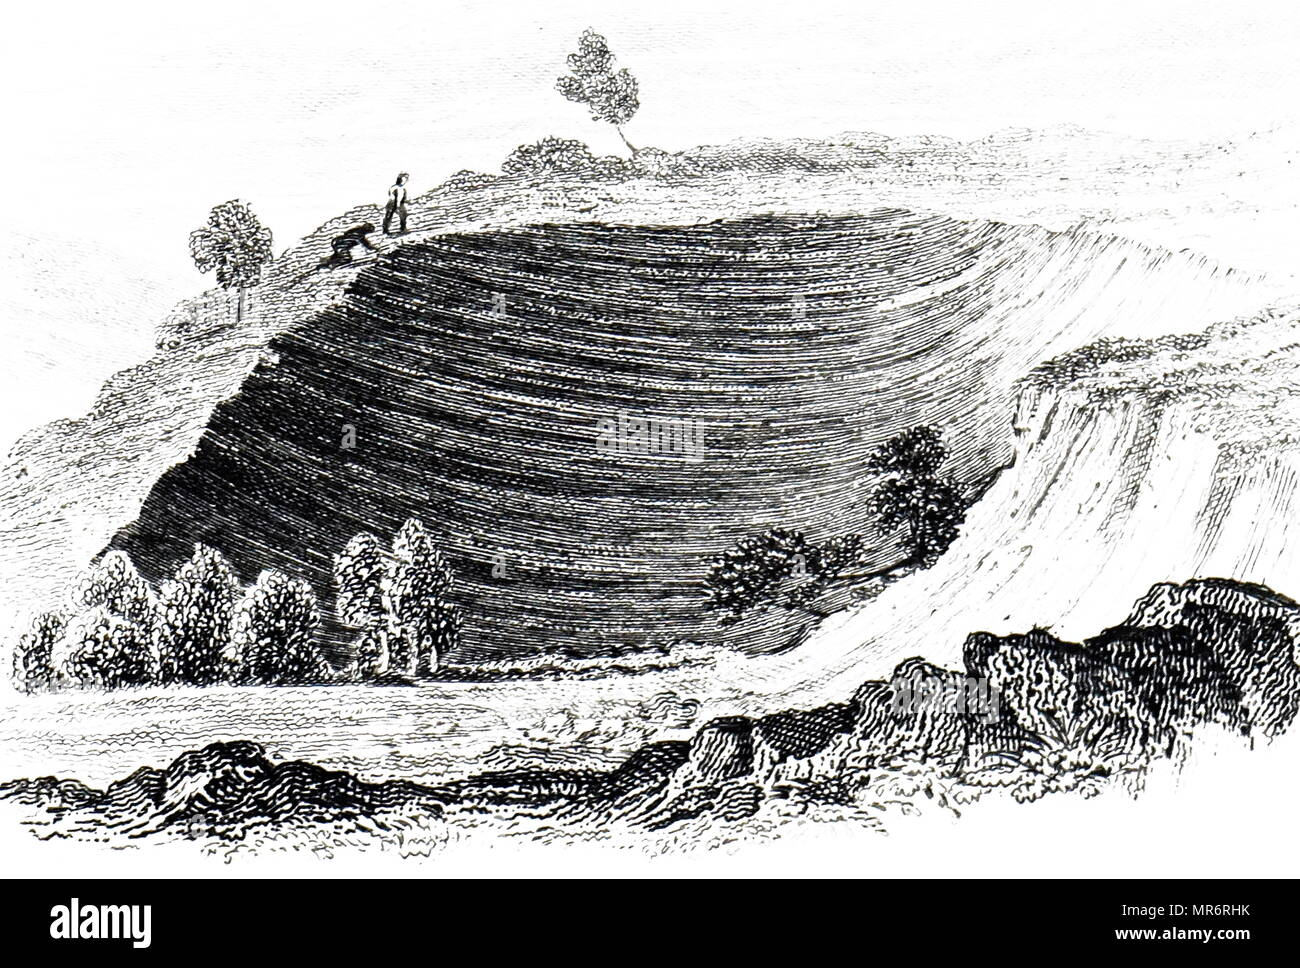 Engraving depicting a chasm, near Oppido, caused by the 1783 Calabria earthquakes. The earthquakes were a sequence of five strong earthquakes that hit the region of Calabria in southern Italy, the first two of which produced significant tsunamis. Dated 19th century - Stock Image